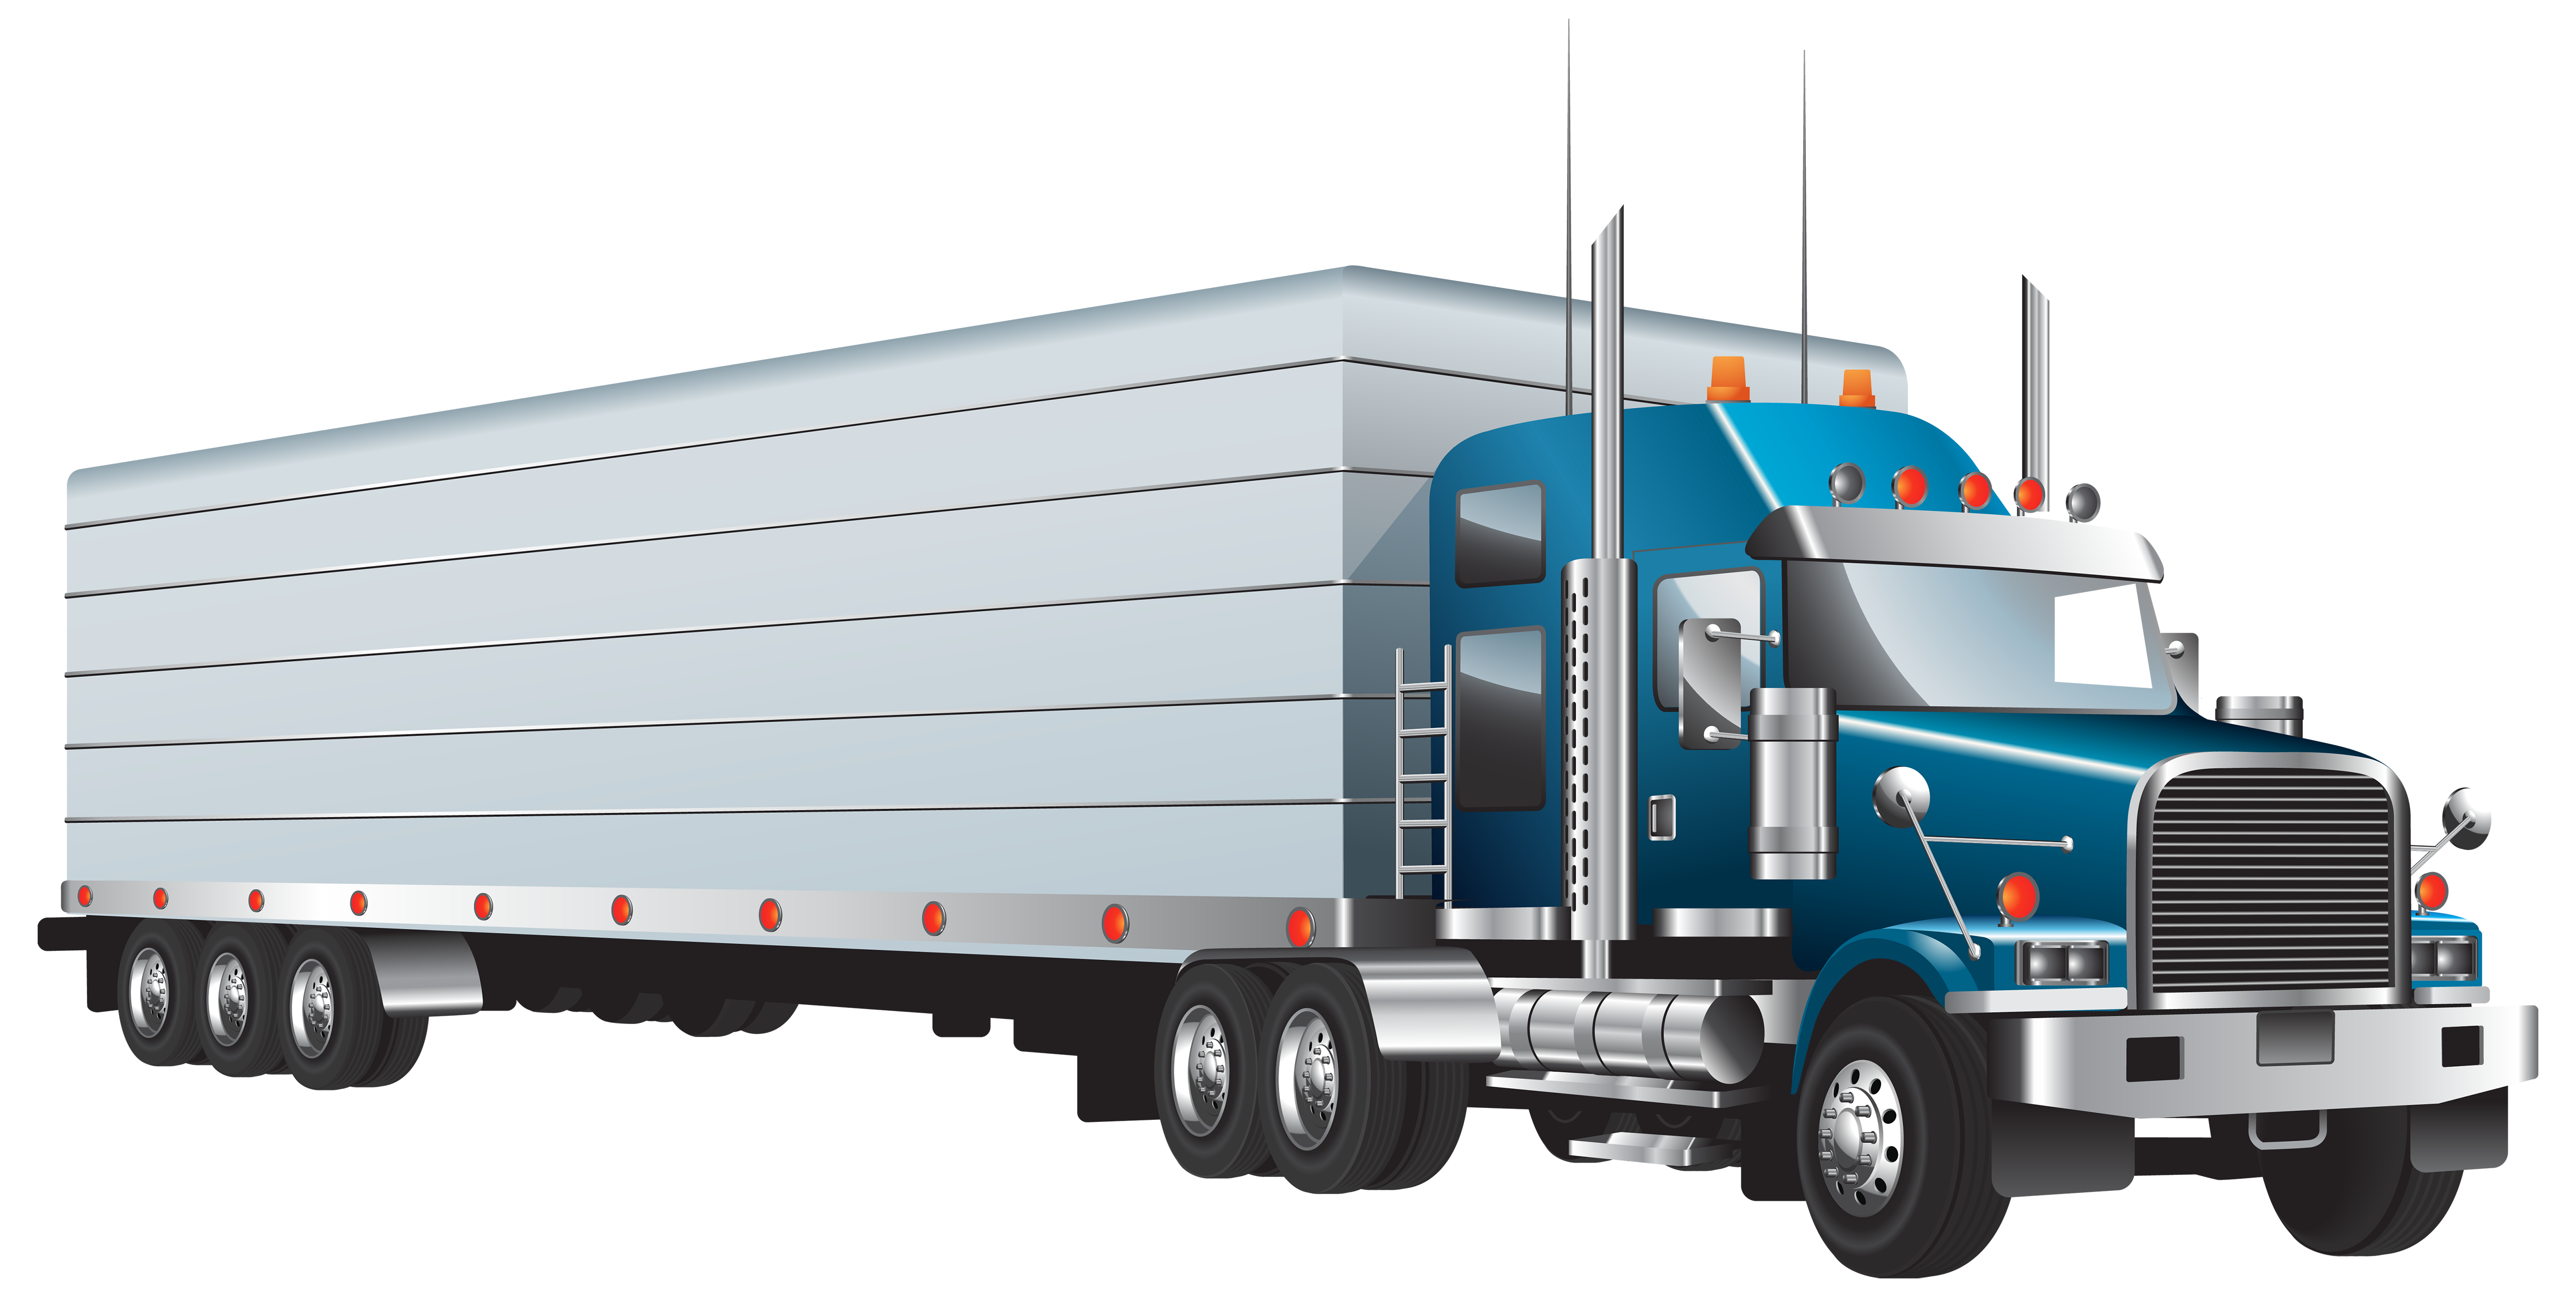 Png best web. Clipart trees truck